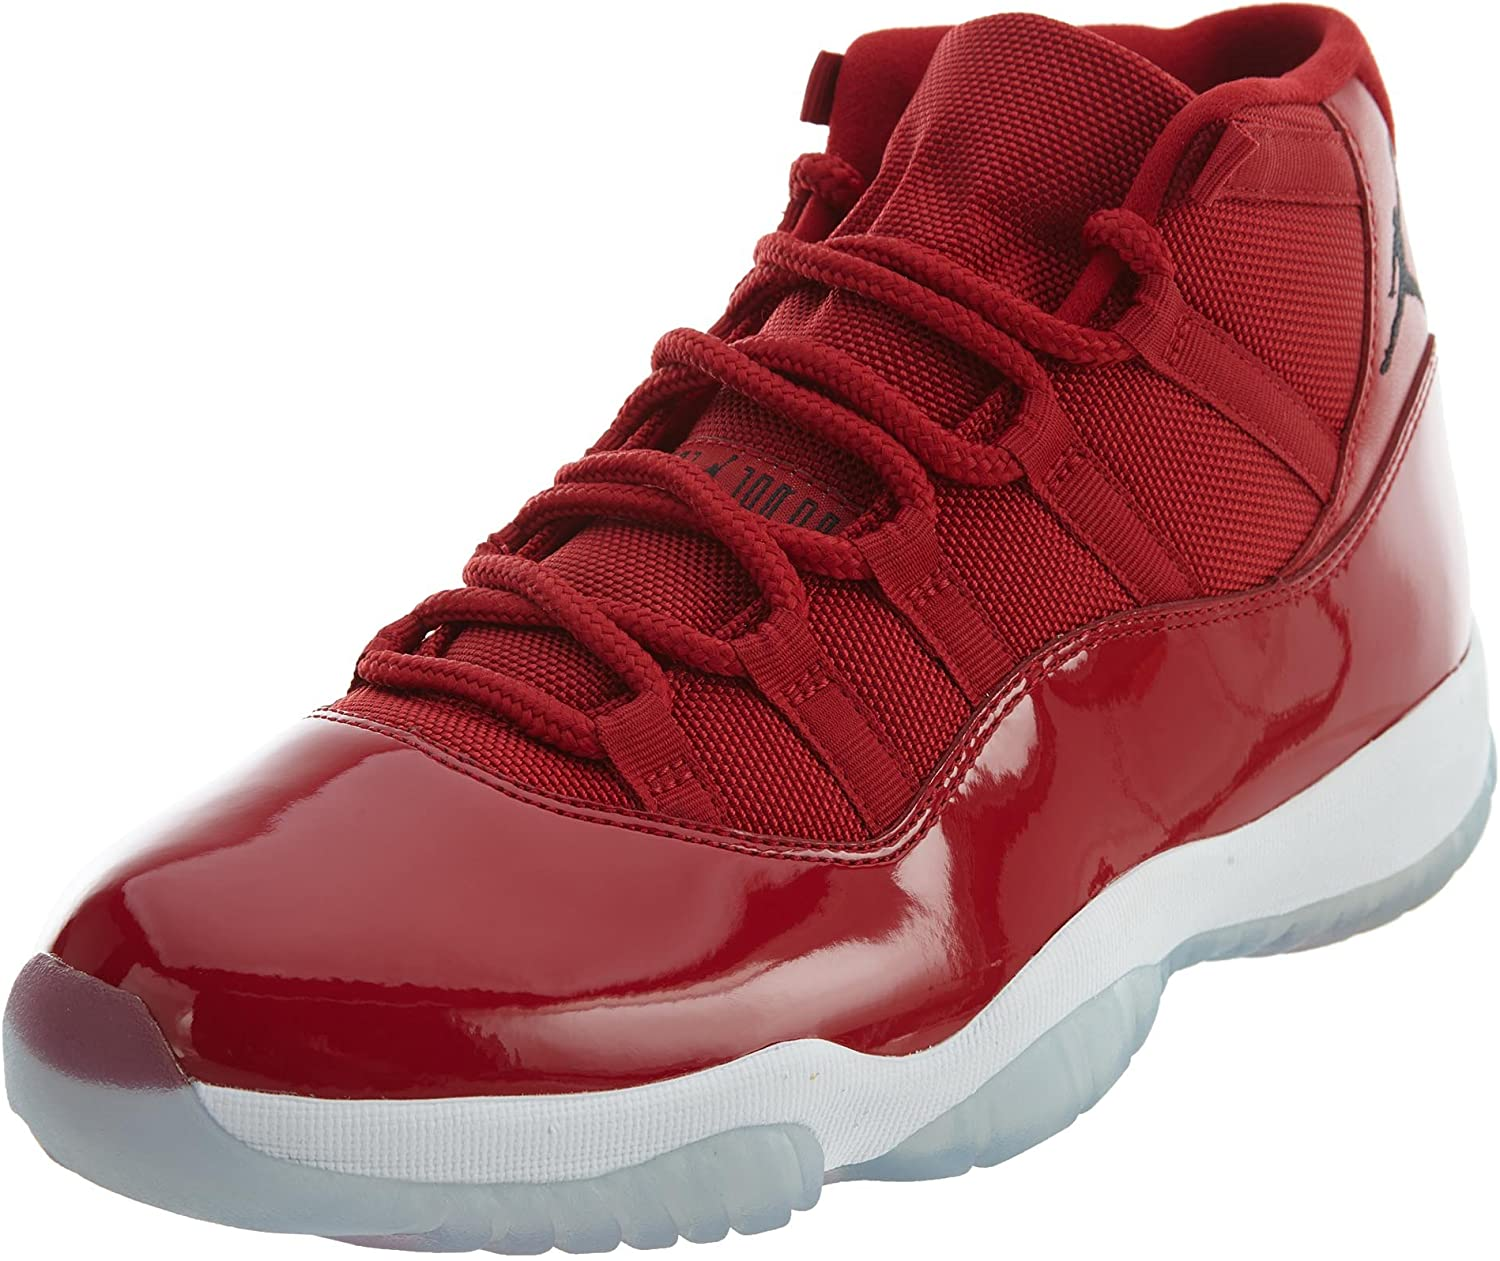 Amazon Com Jordan Men S Air 11 Retro Gym Red Black White